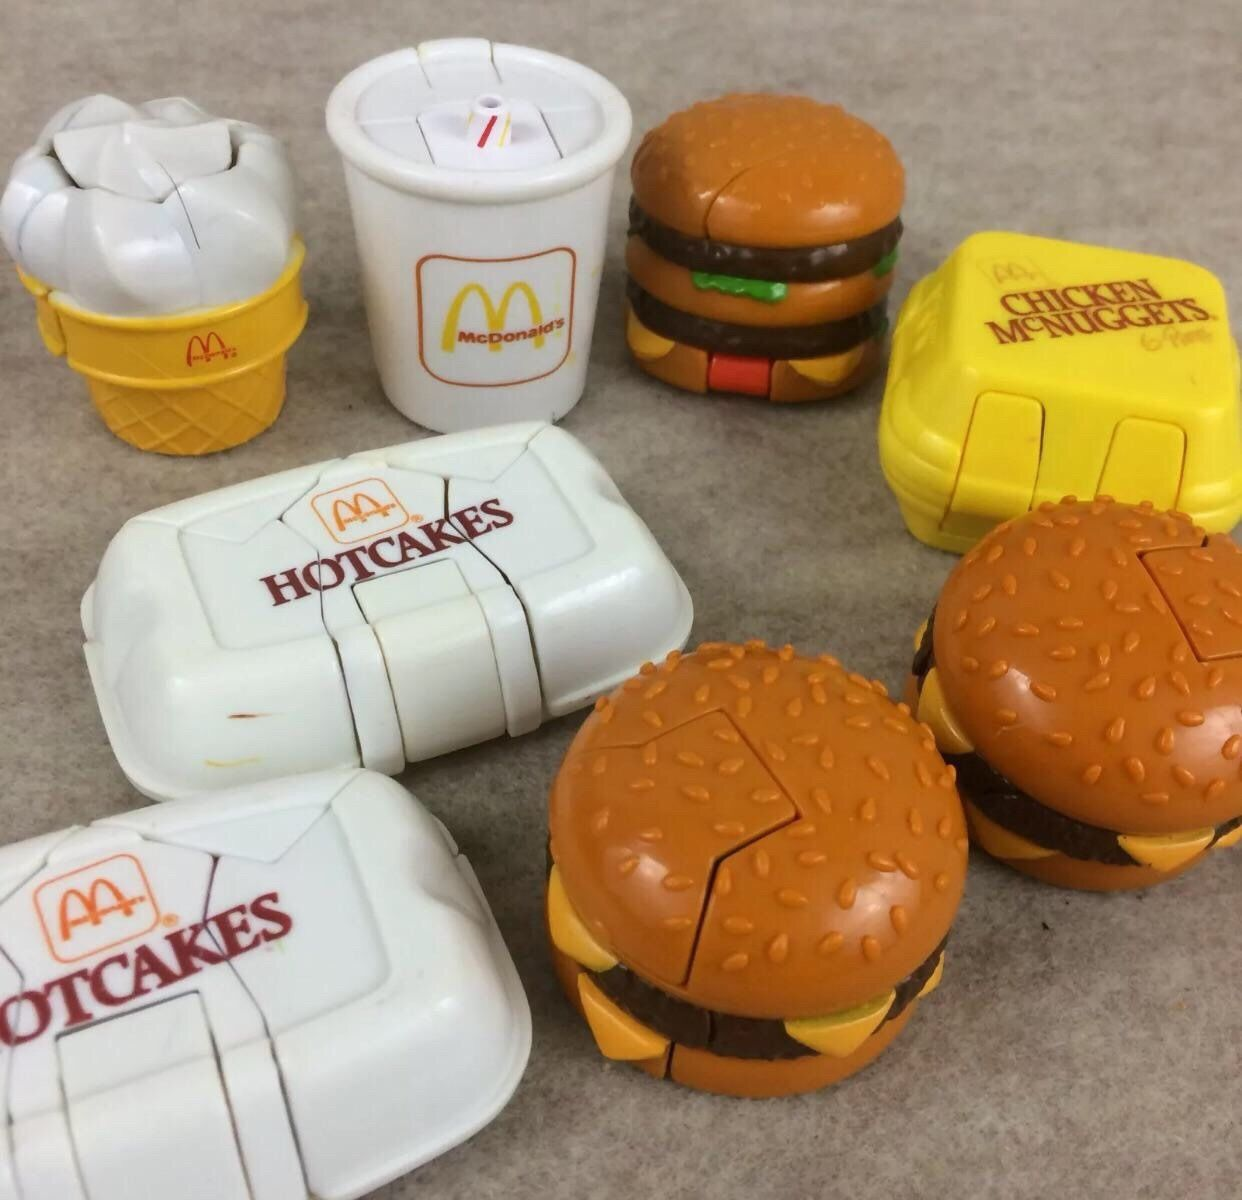 Vintage early 90s McDonald's toys Happy meal toys, Happy